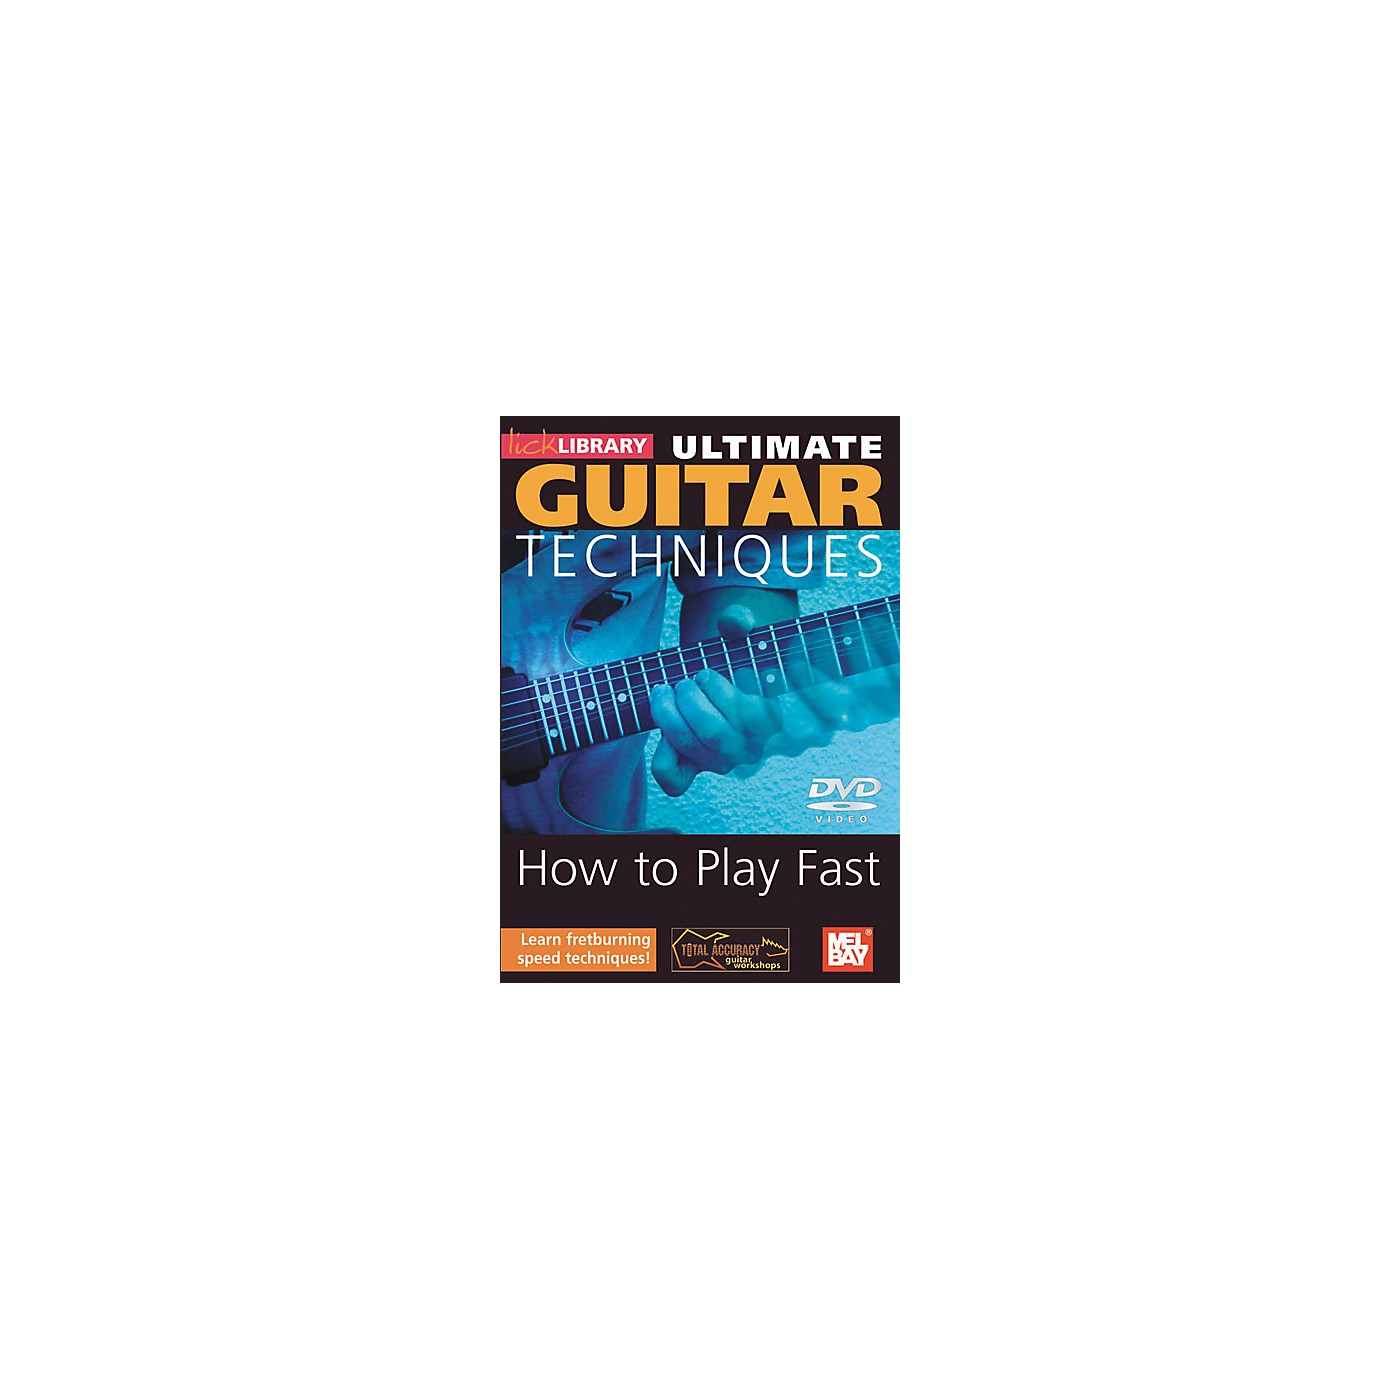 Mel Bay Lick Library Ultimate Guitar Techniques - How to Play Fast DVD thumbnail